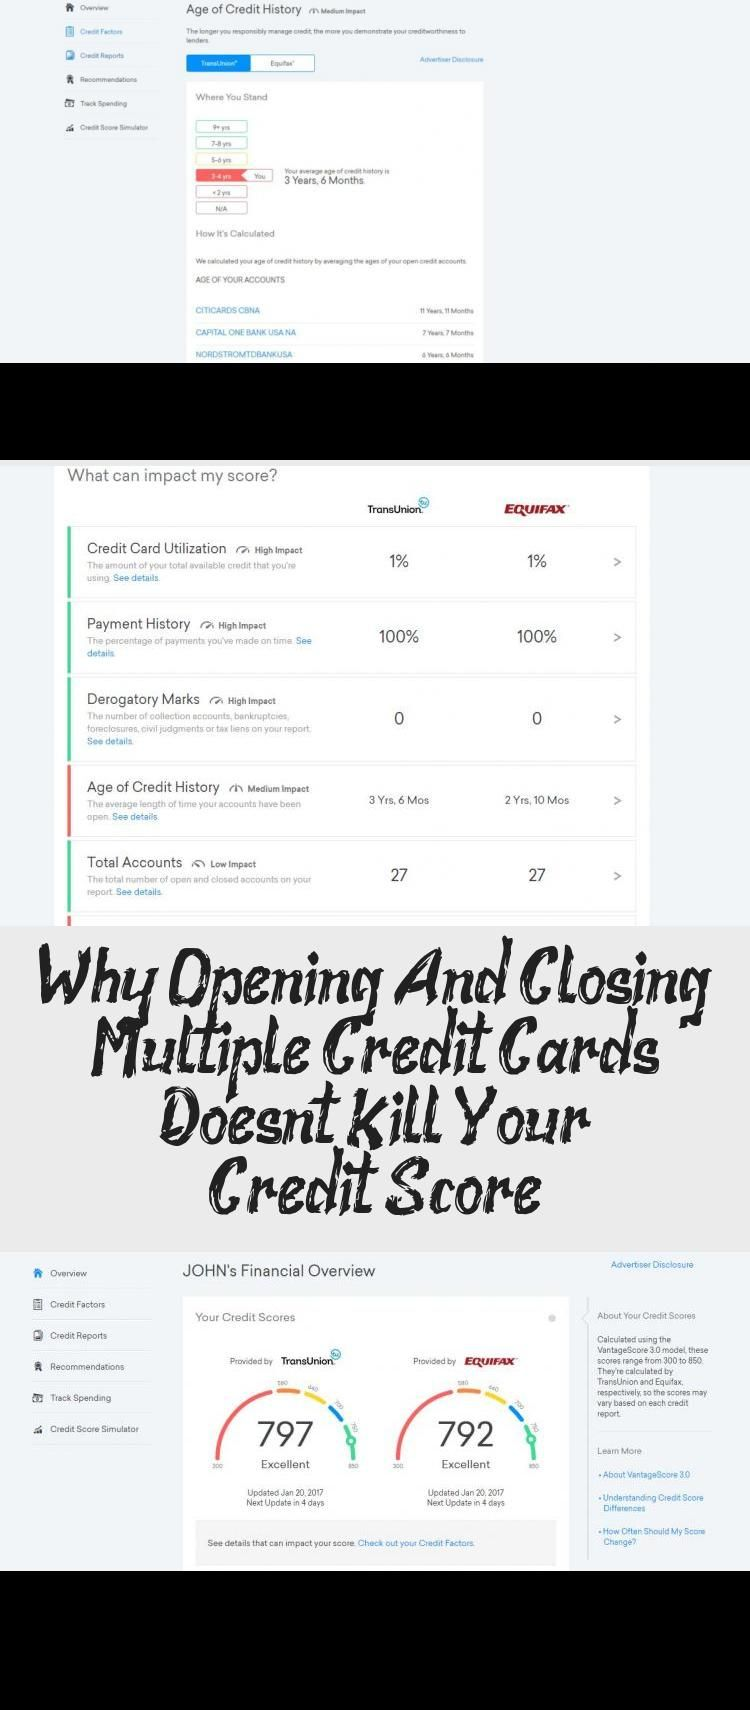 Why Opening And Closing Multiple Credit Cards Doesn T Kill Your